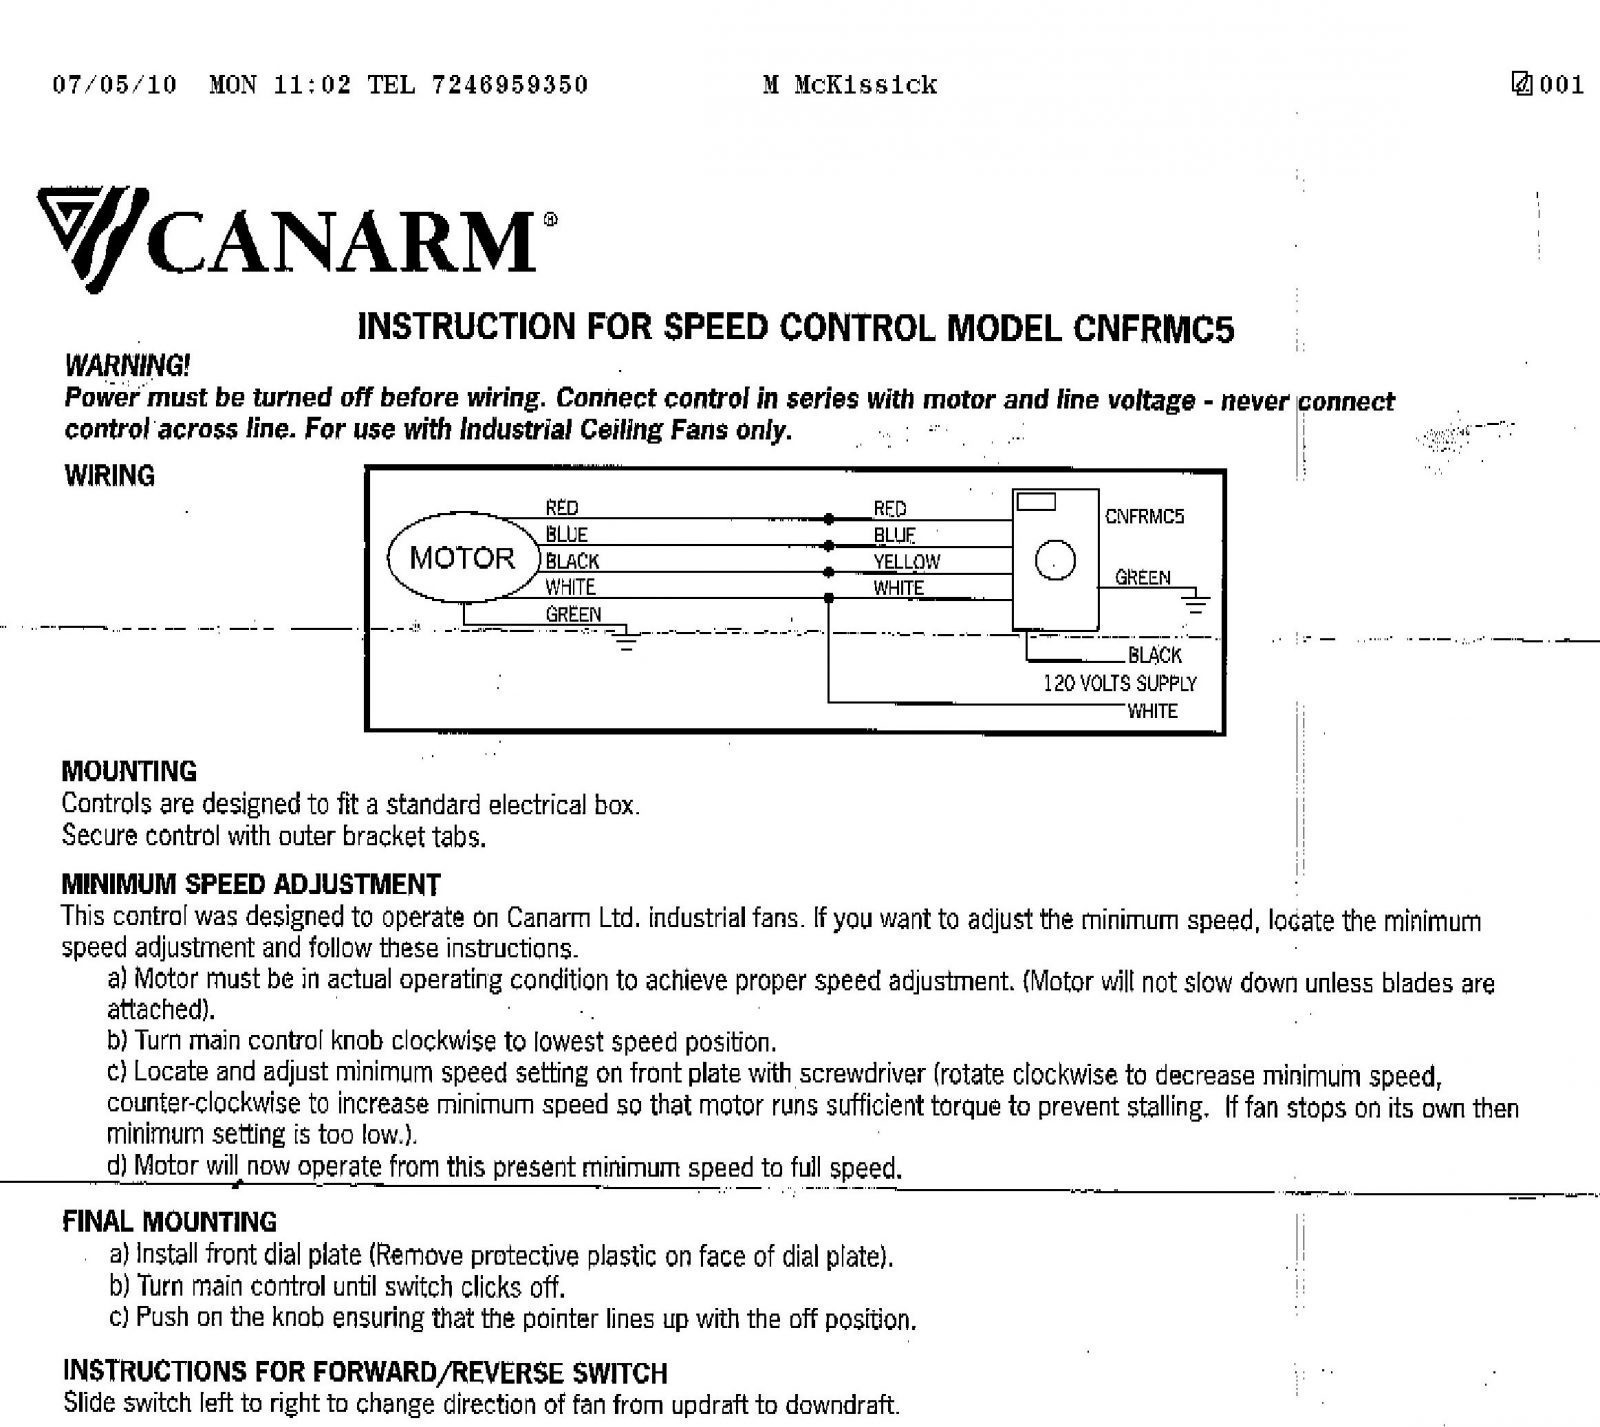 Canarm Fan Speed Control Wiring Diagram Gallery Sample Ceiling Light One Switch Collection For Exhaust Fresh Industrial